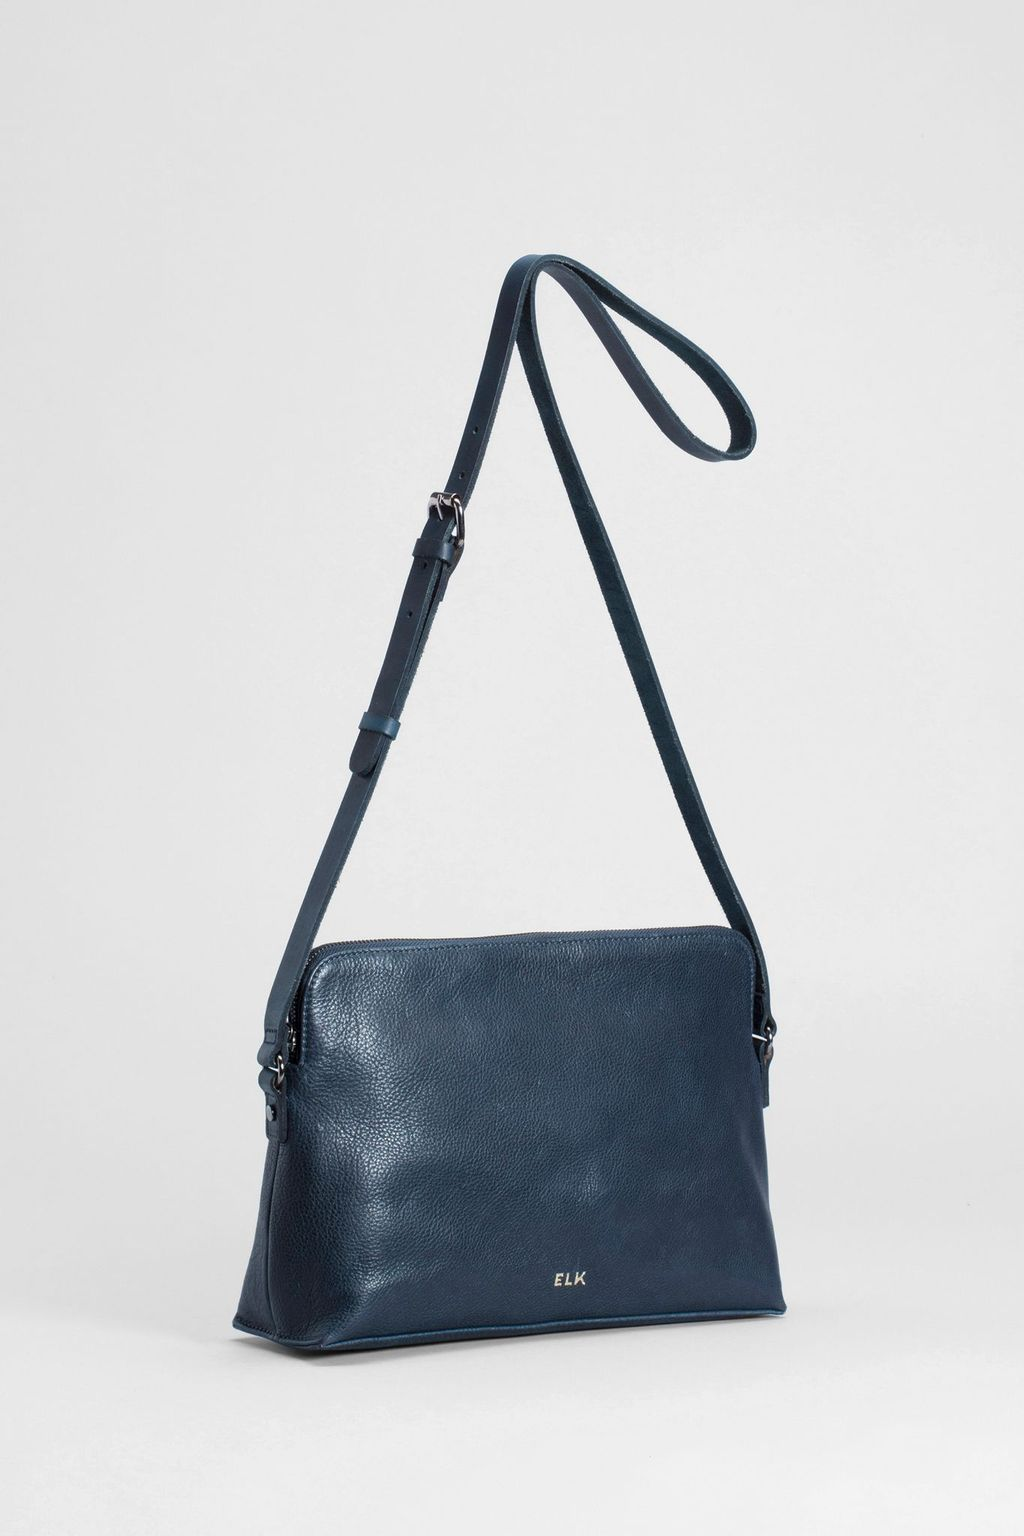 Elk the Label Idre Small Bag Steel Blue